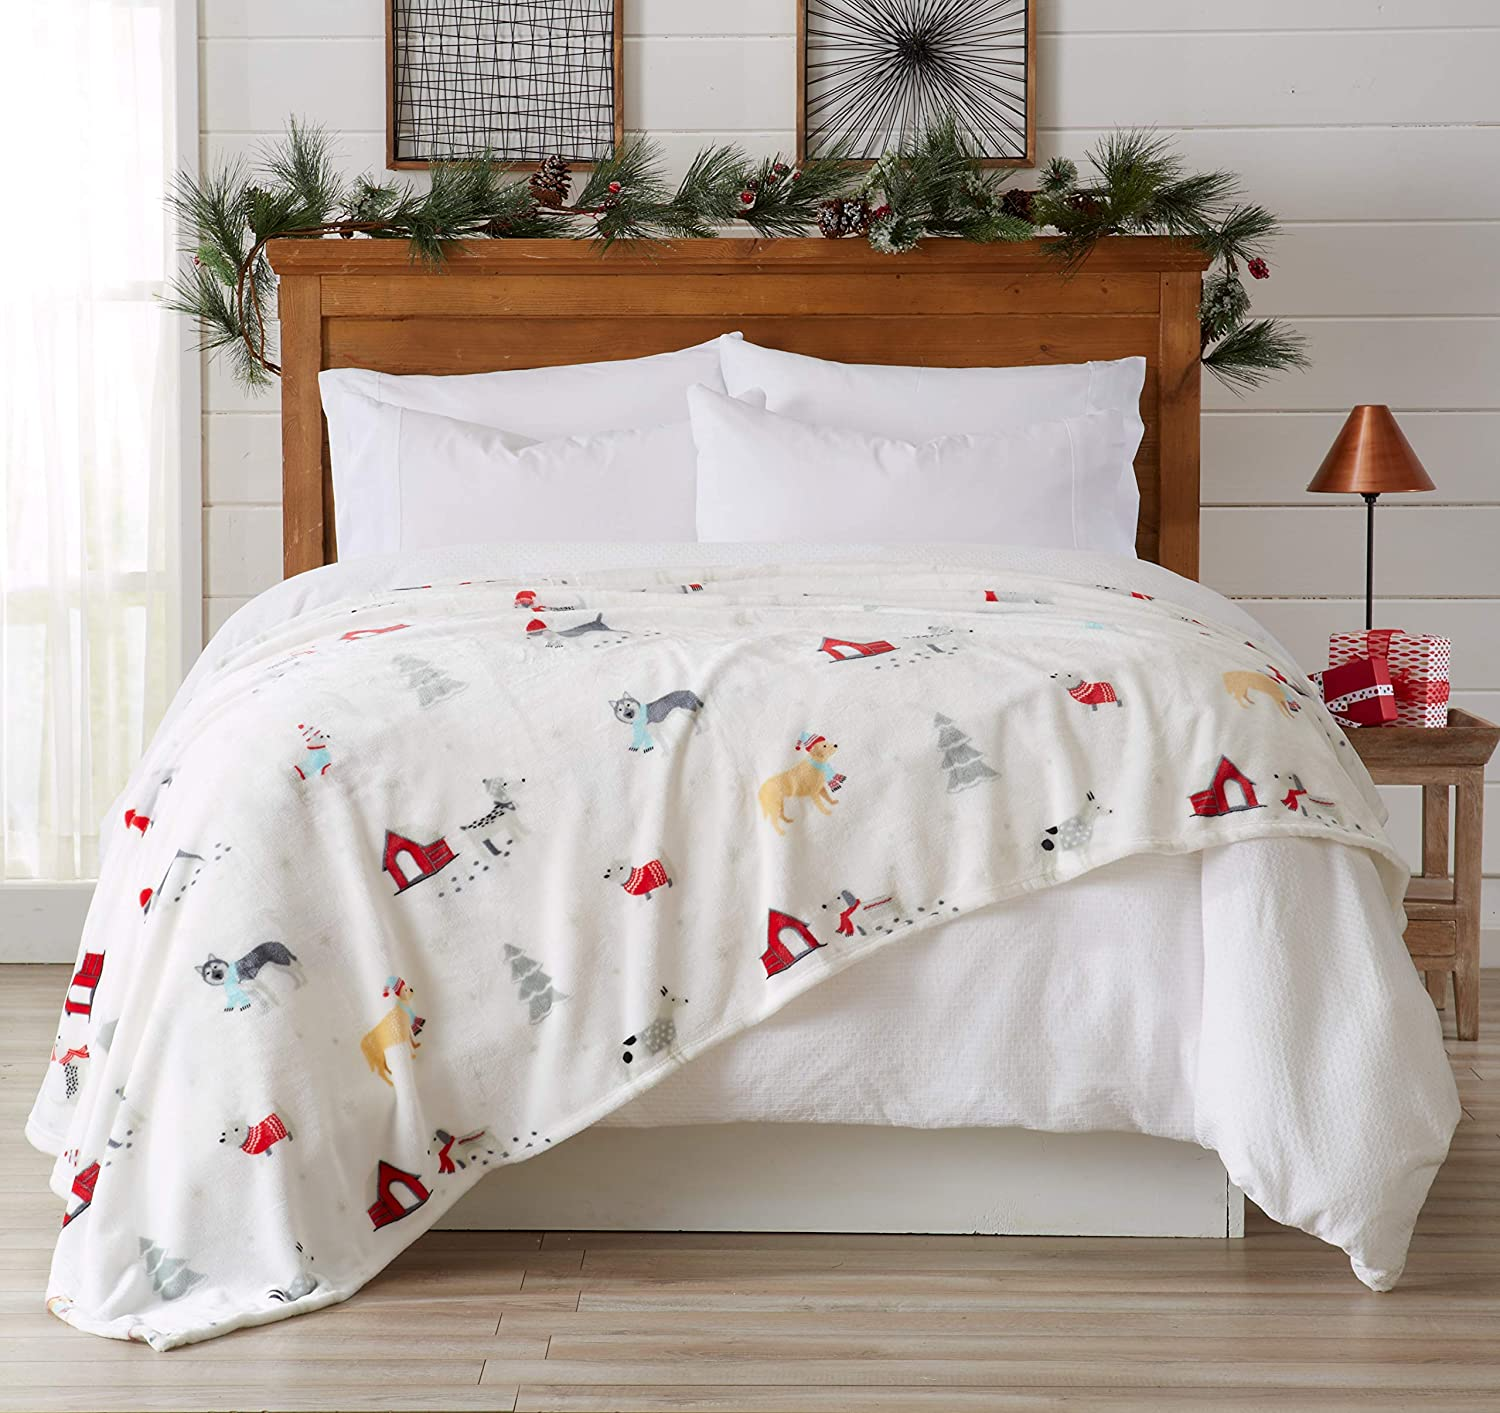 Great Bay Home Decorative Holiday King Blanket. Super Soft Velvet Plush Christmas Design. (Pups in The Snow)